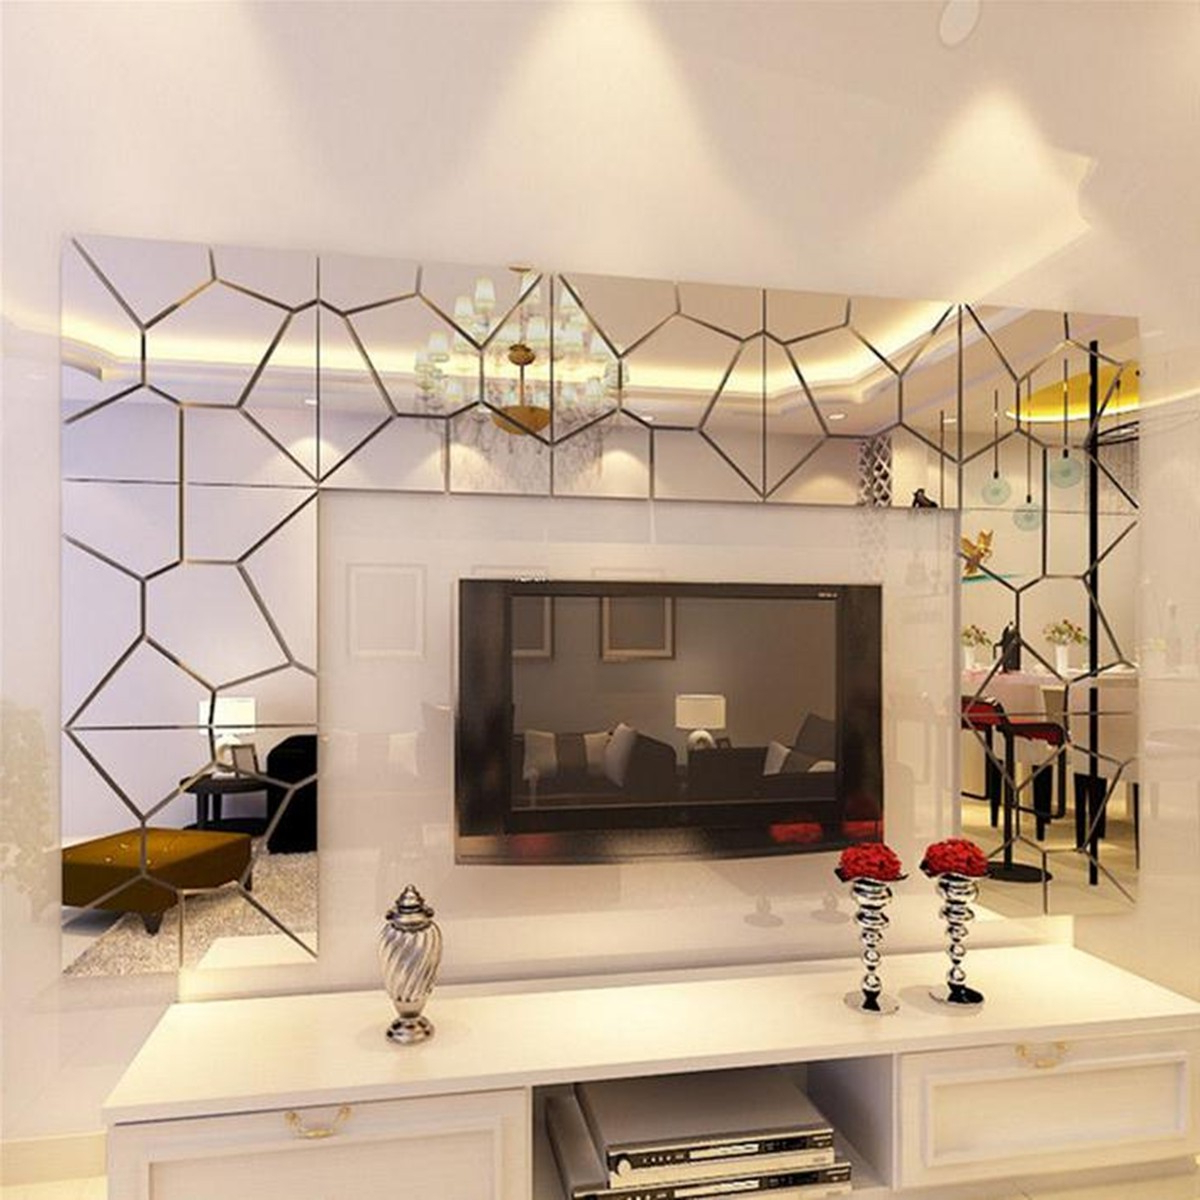 7 35Pcs 3D Acrylic Removable Modern Mirror Decal Art Mural Wall Sticker Home Room Decor Diy With Regard To Well Liked Acrylic Wall Mirrors (Gallery 10 of 20)